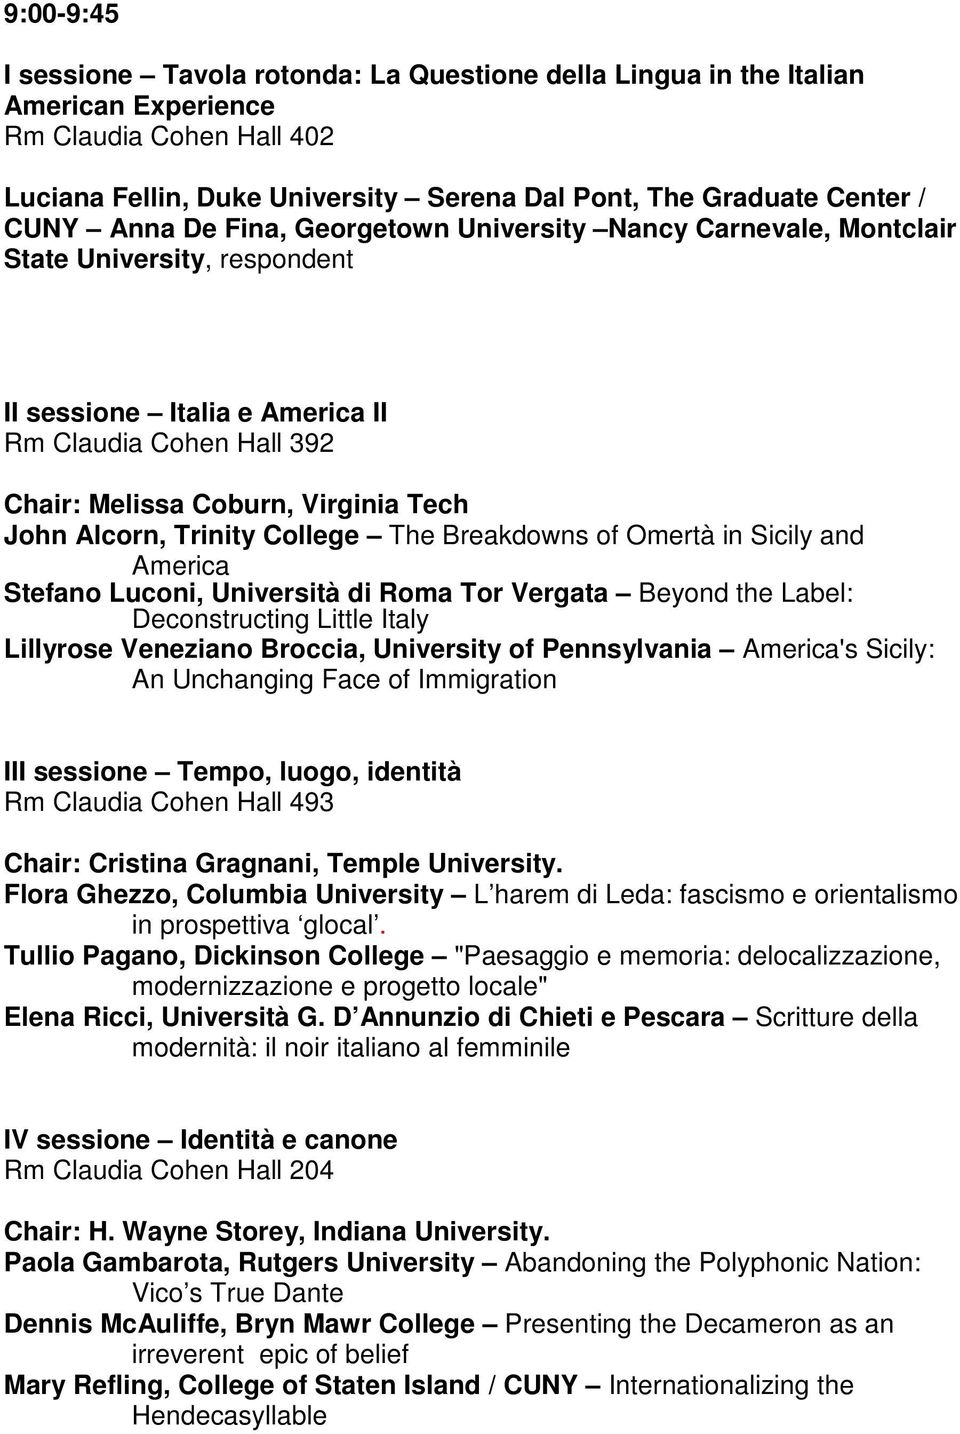 Trinity College The Breakdowns of Omertà in Sicily and America Stefano Luconi, Università di Roma Tor Vergata Beyond the Label: Deconstructing Little Italy Lillyrose Veneziano Broccia, University of